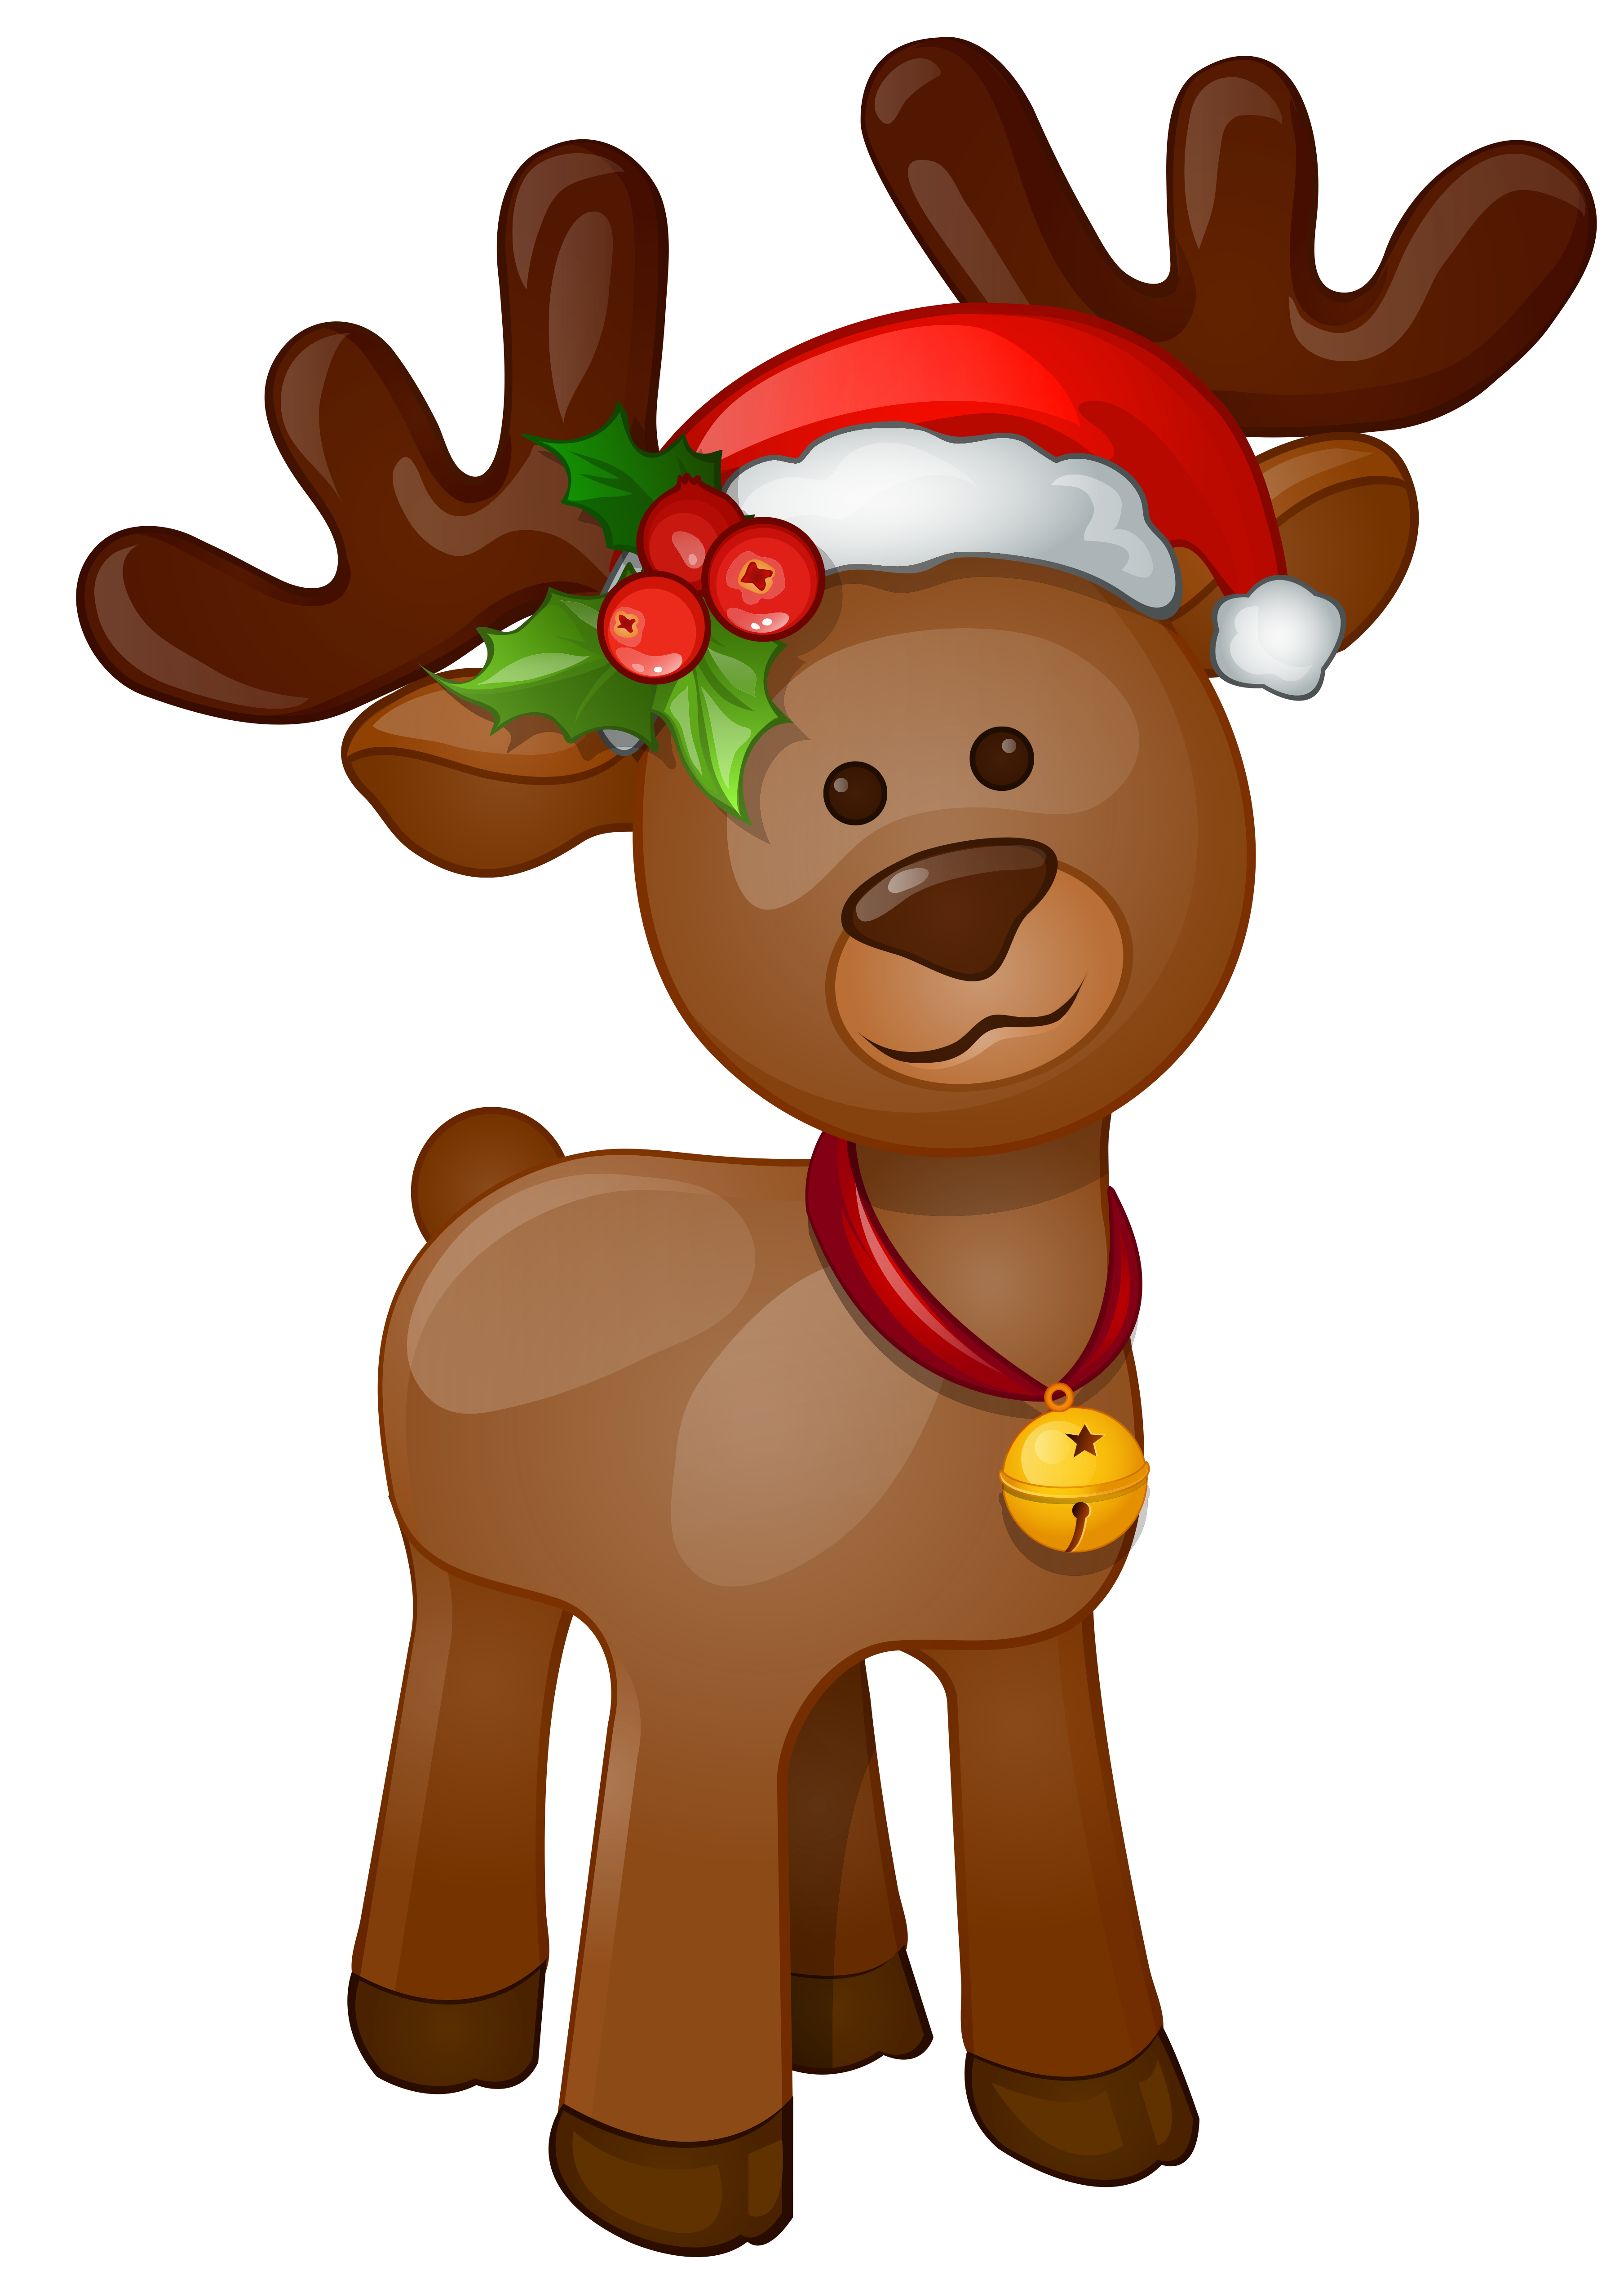 Christmas Rudolph Png - Rudolph PNG Clip Art Image | Gallery Yopriceville - High-Quality ...